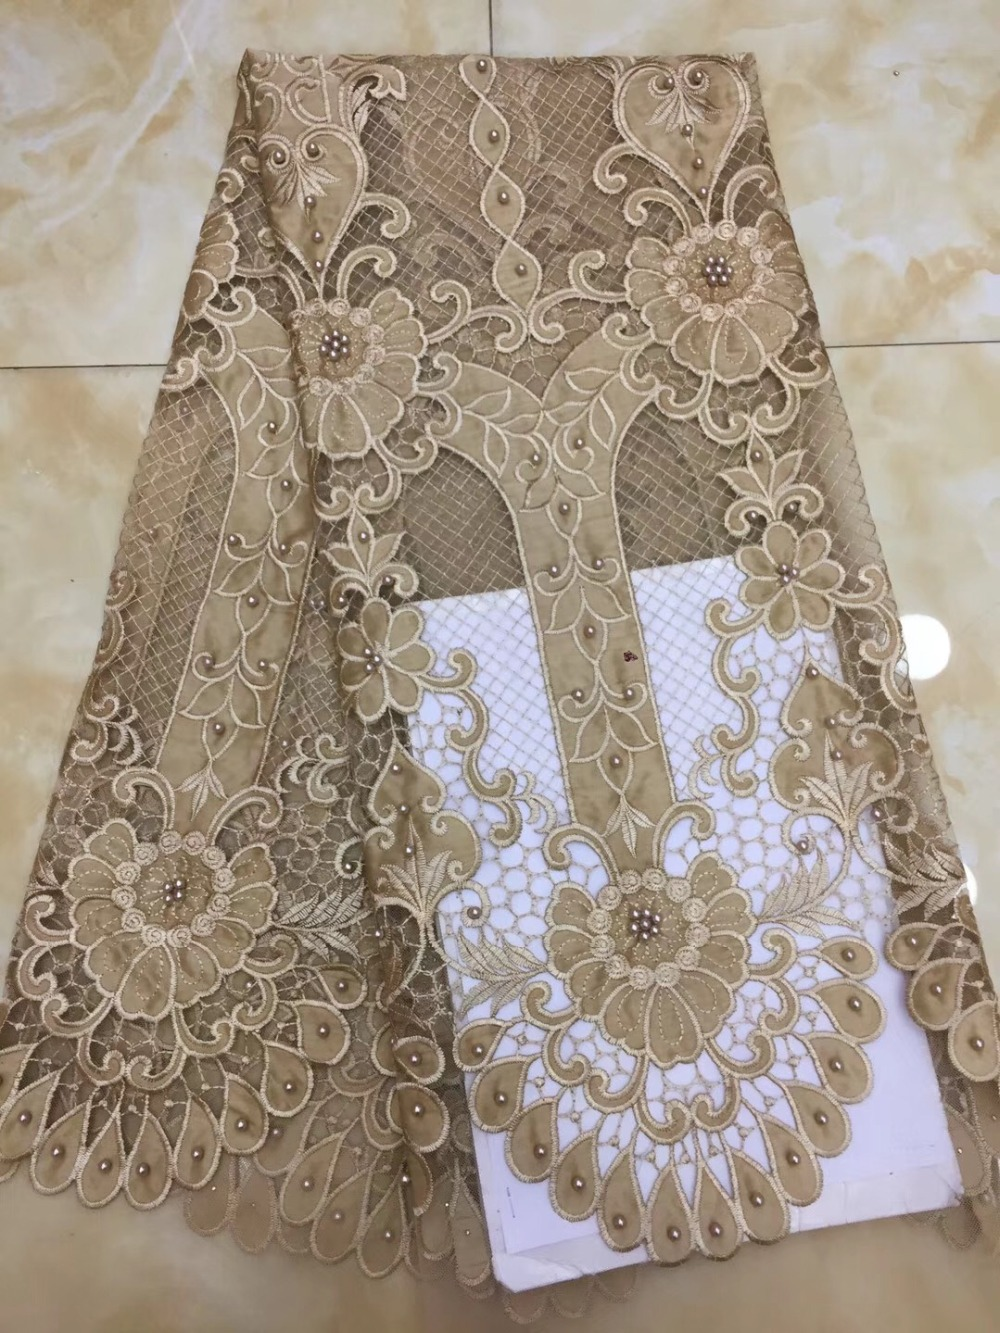 Latest French Lace Fabric Best Quality African chiffon Lace Fabric With Beads Embroidery Nigerian Party DressLatest French Lace Fabric Best Quality African chiffon Lace Fabric With Beads Embroidery Nigerian Party Dress